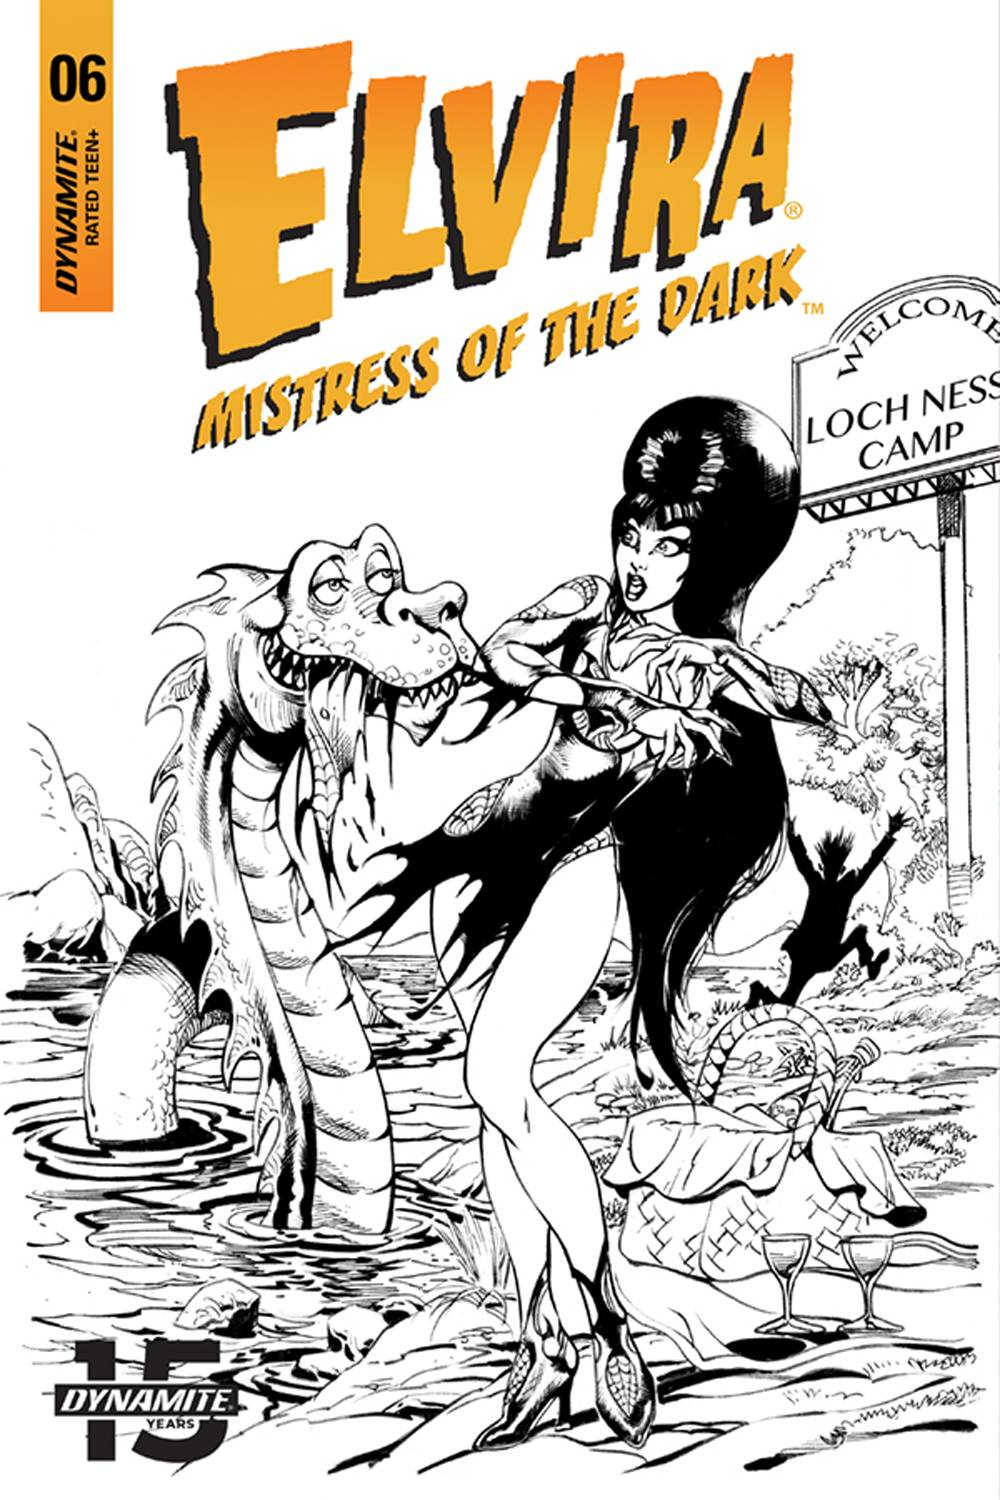 ELVIRA MISTRESS OF DARK #6 15 COPY CASTRO FOC B&W INCV.jpg